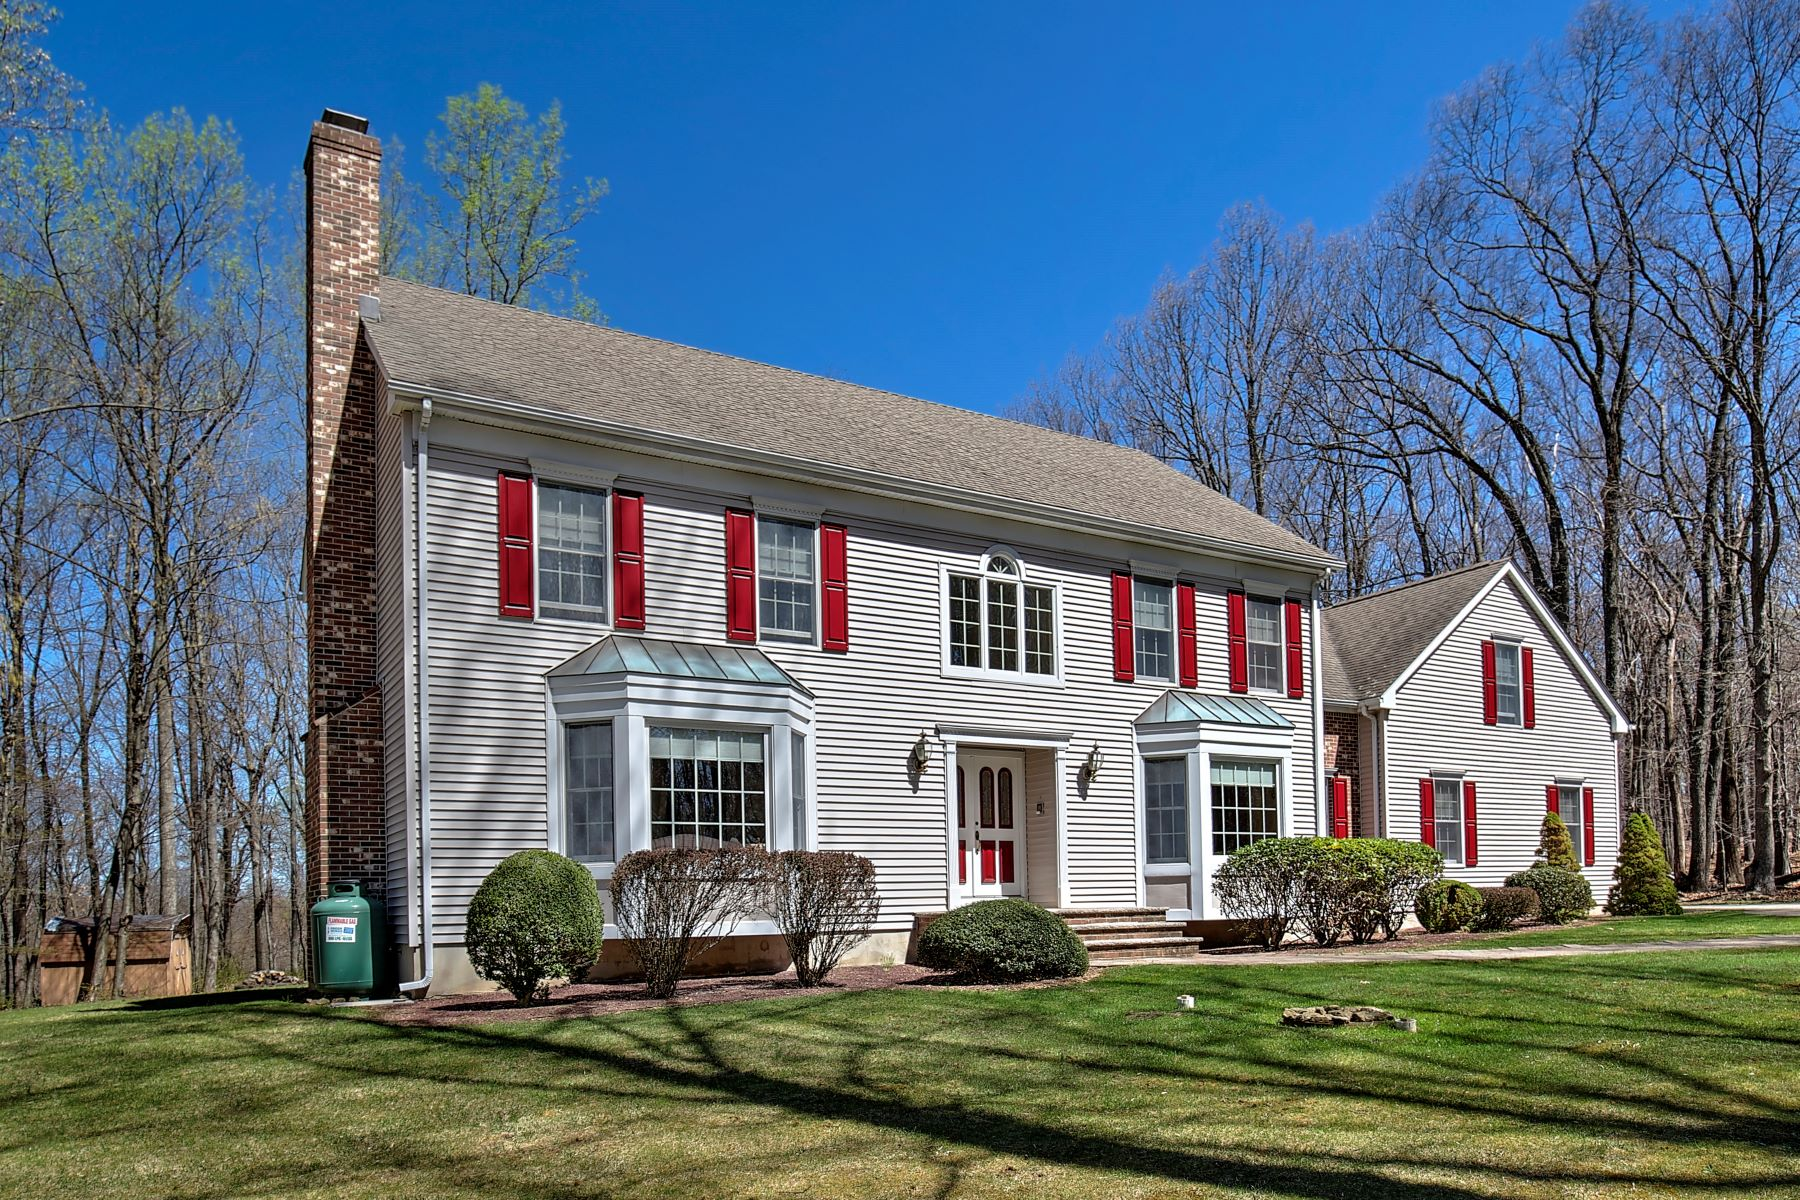 Single Family Home for Sale at Inviting Custom Colonial 31 Philhower Road Tewksbury Township, New Jersey 08833 United States